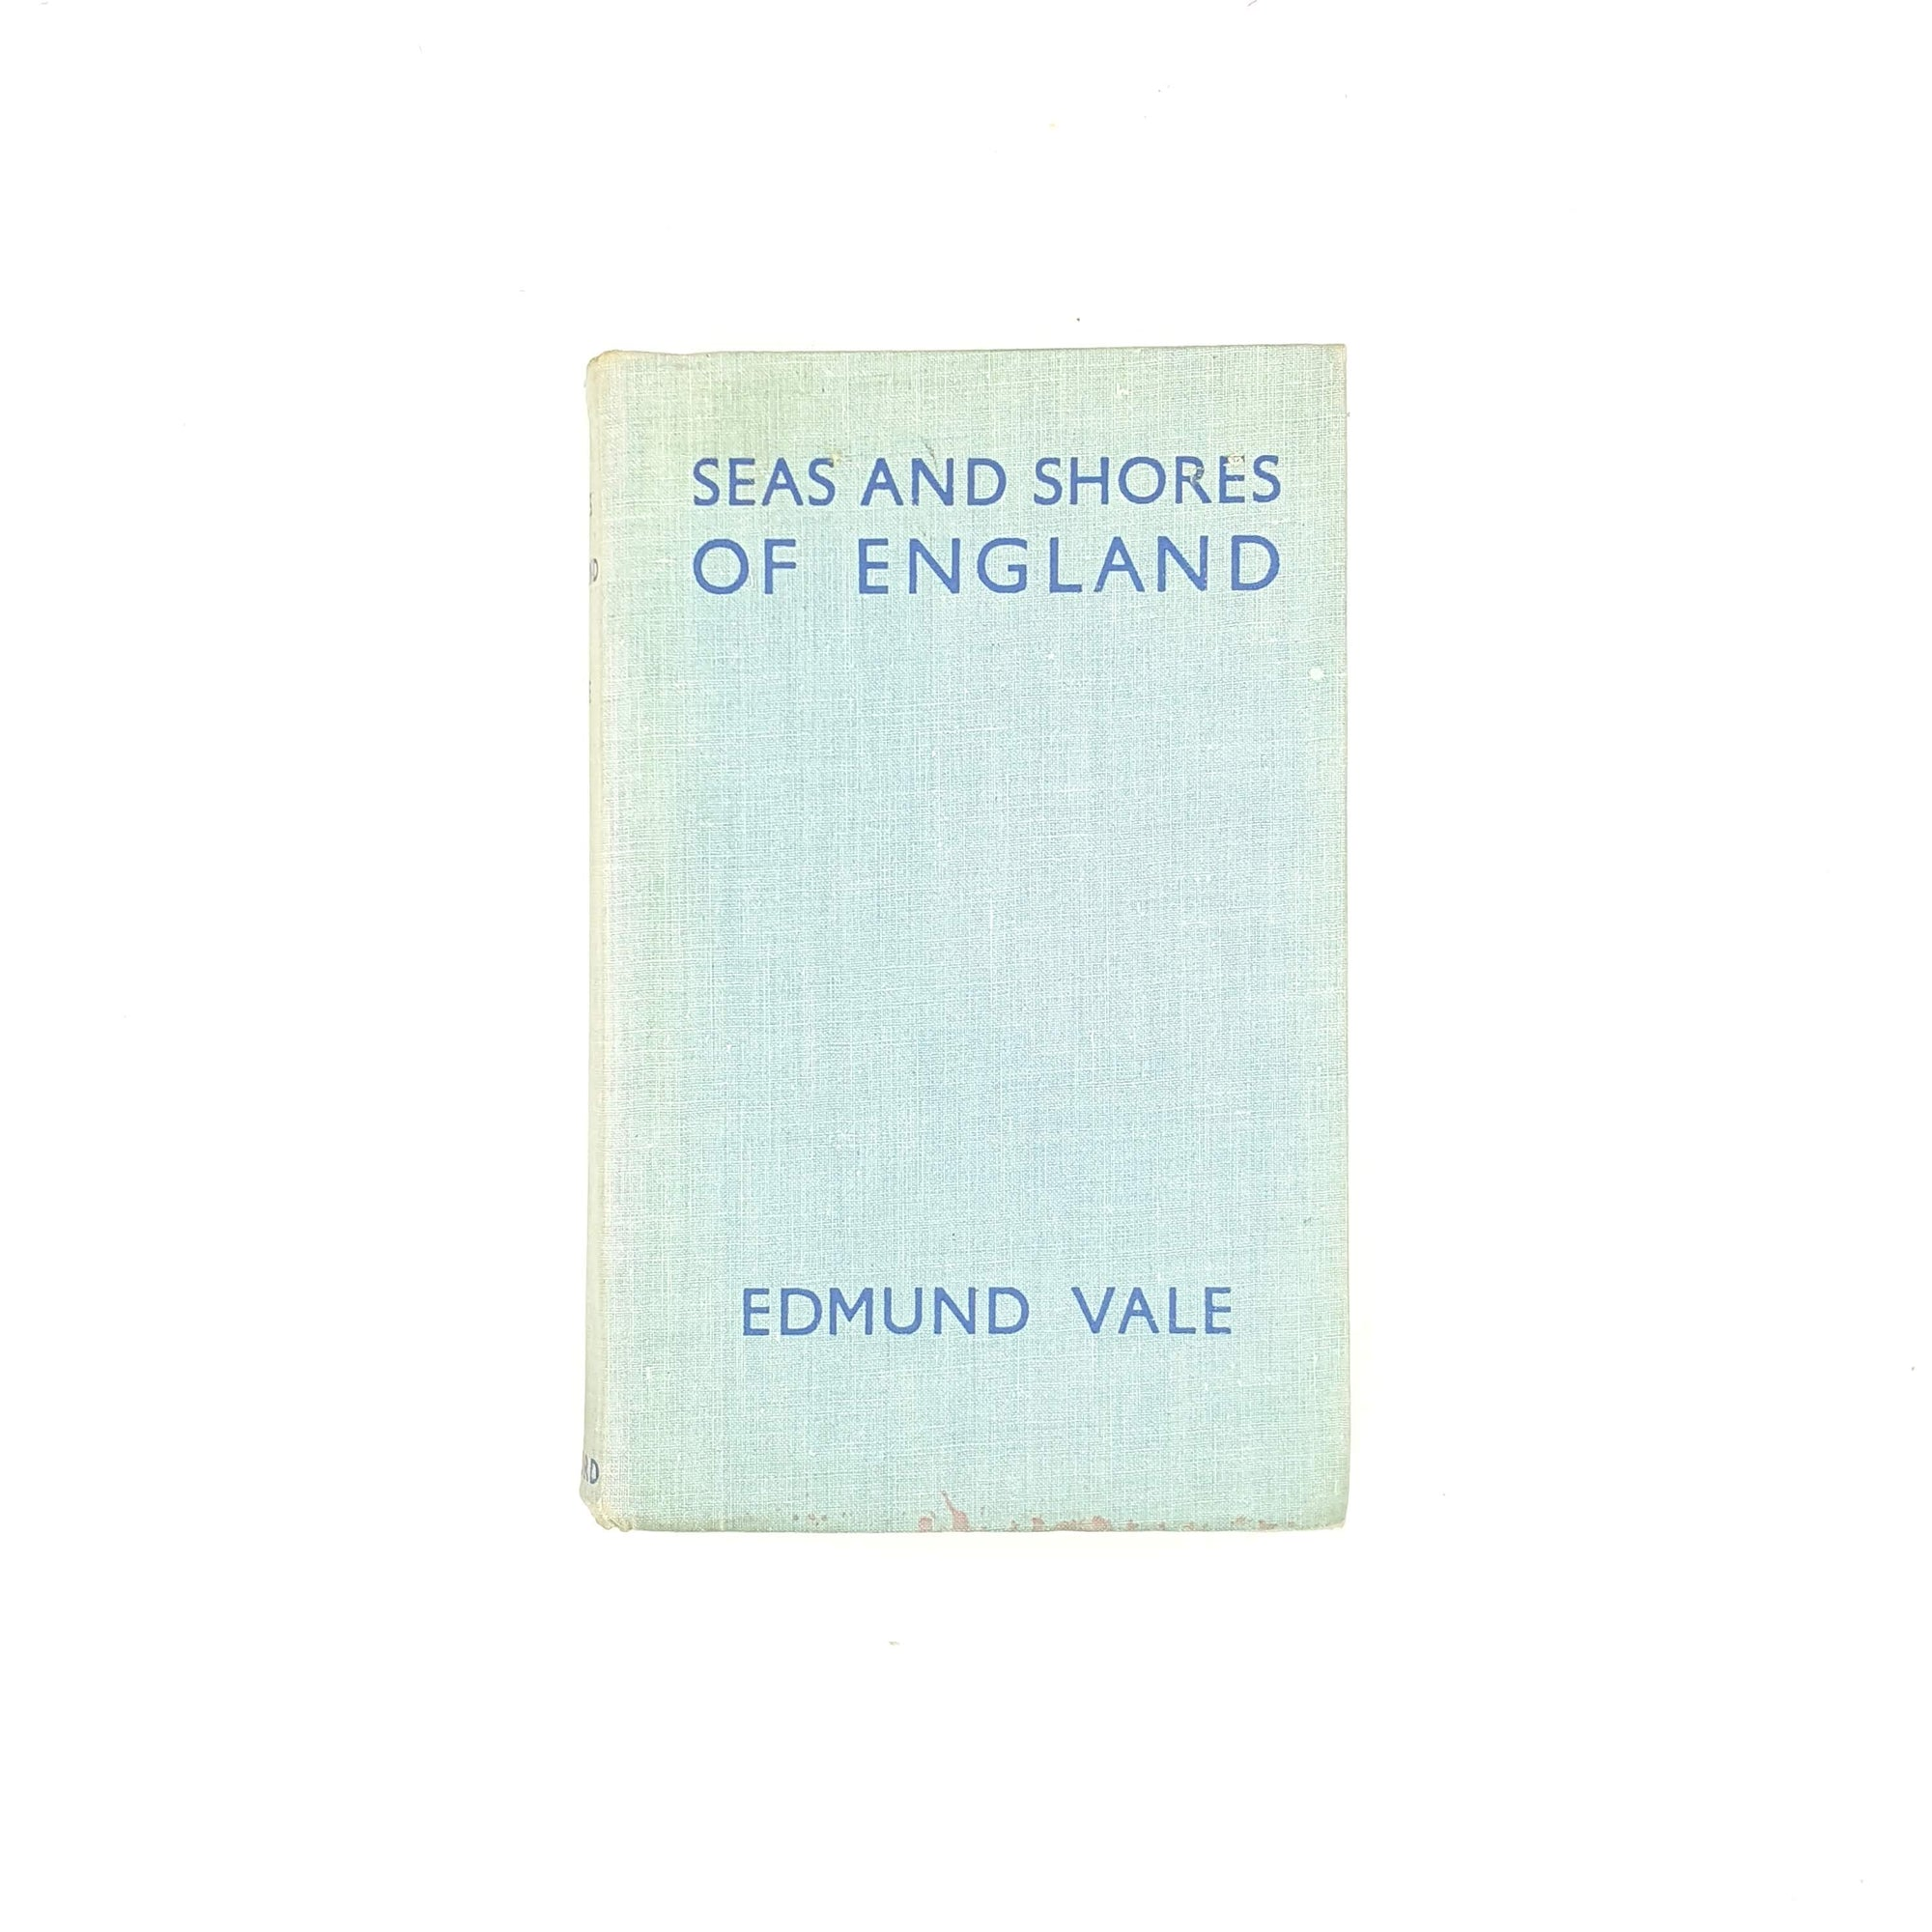 Seas and Shores of England by Edmund Vale 1936